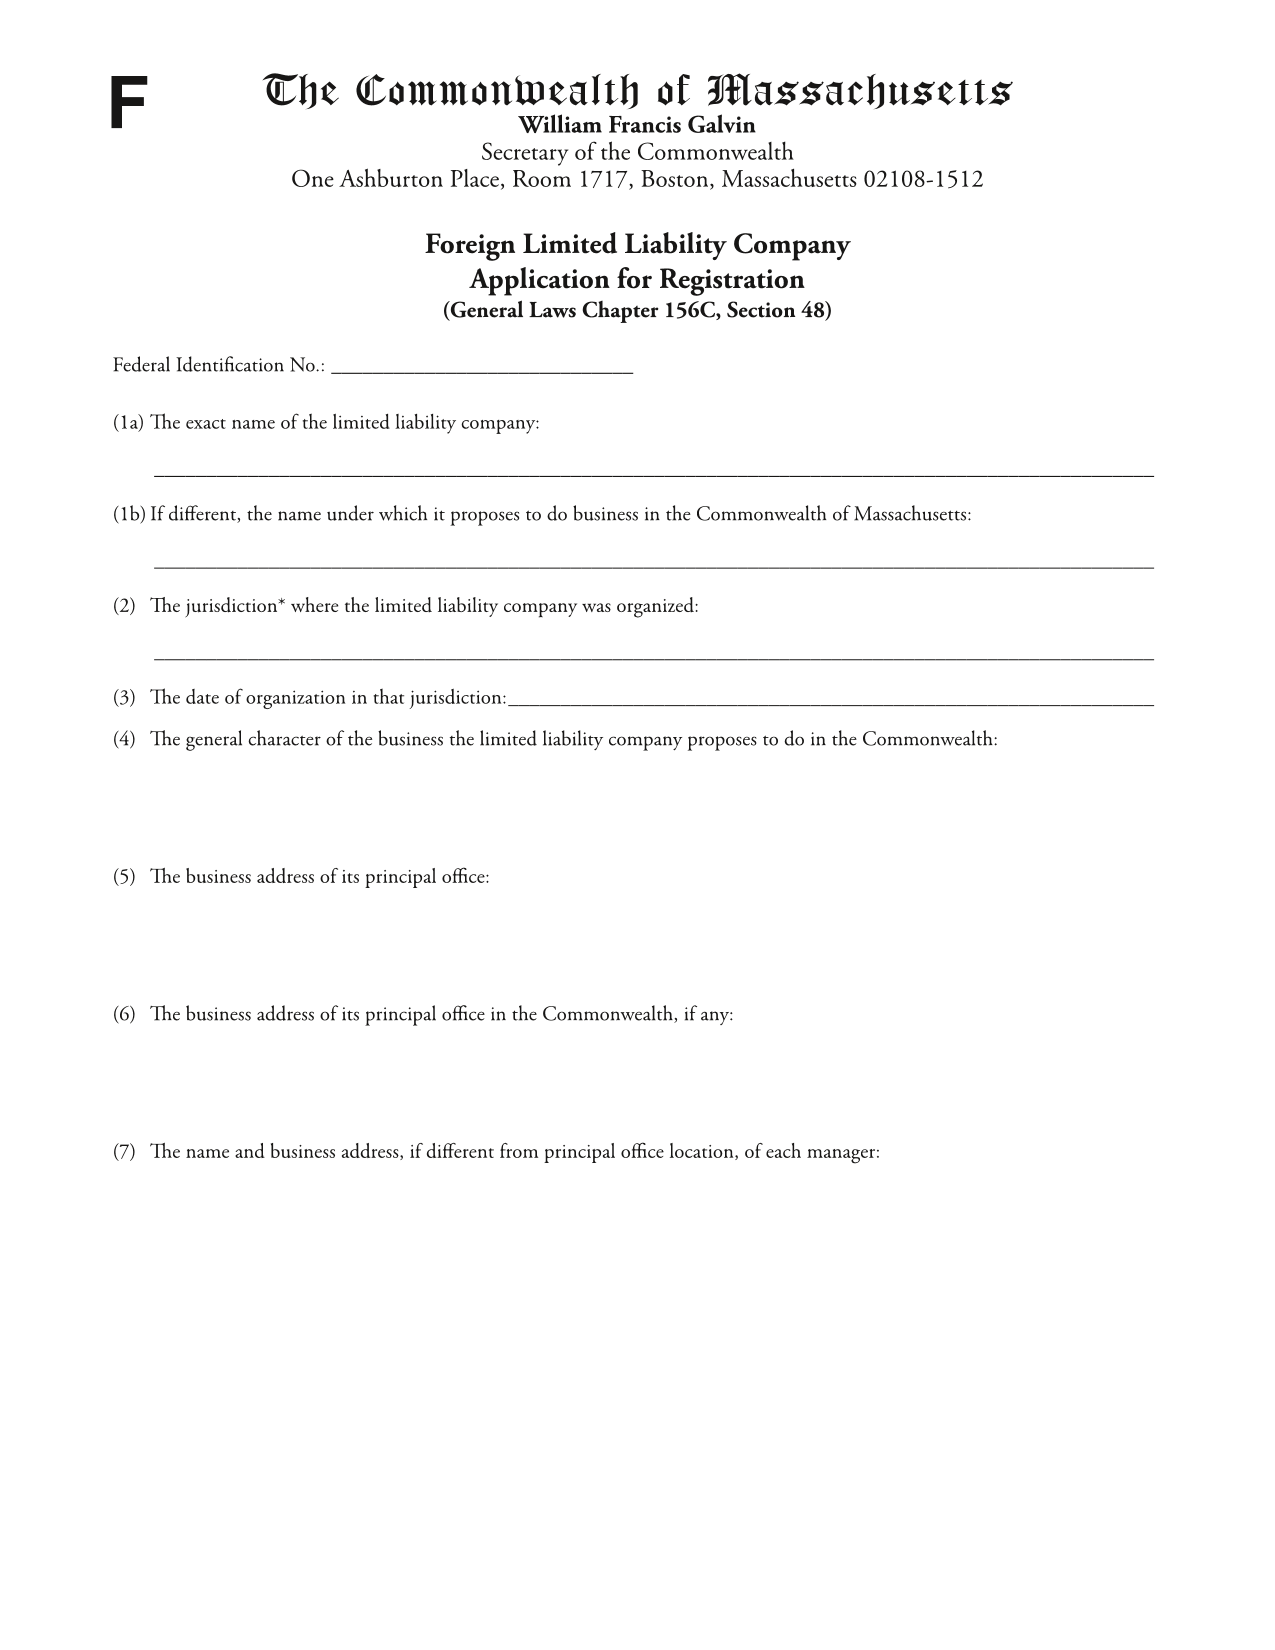 foreign-limited-liability-company-application-for-registration